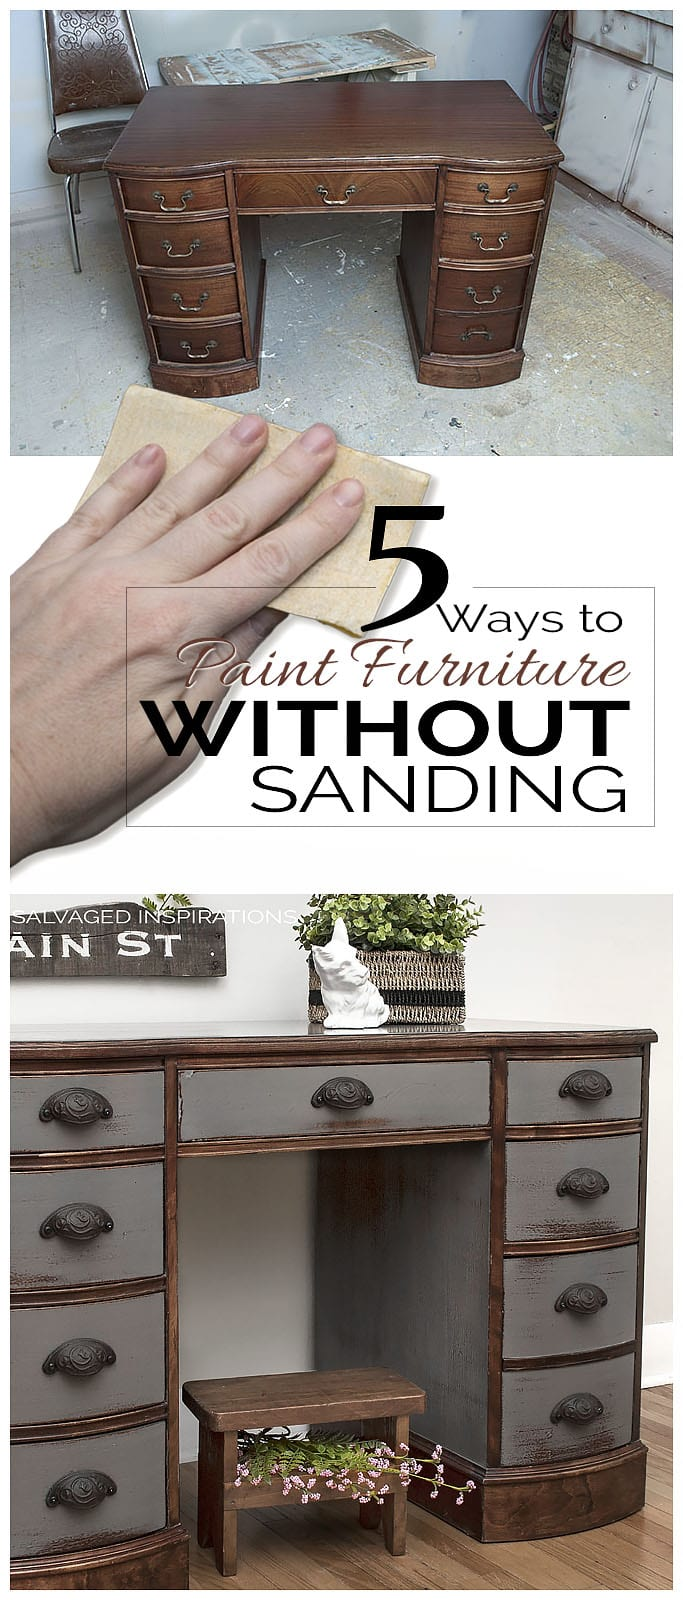 5-ways-to-paint-furniture-without-sanding